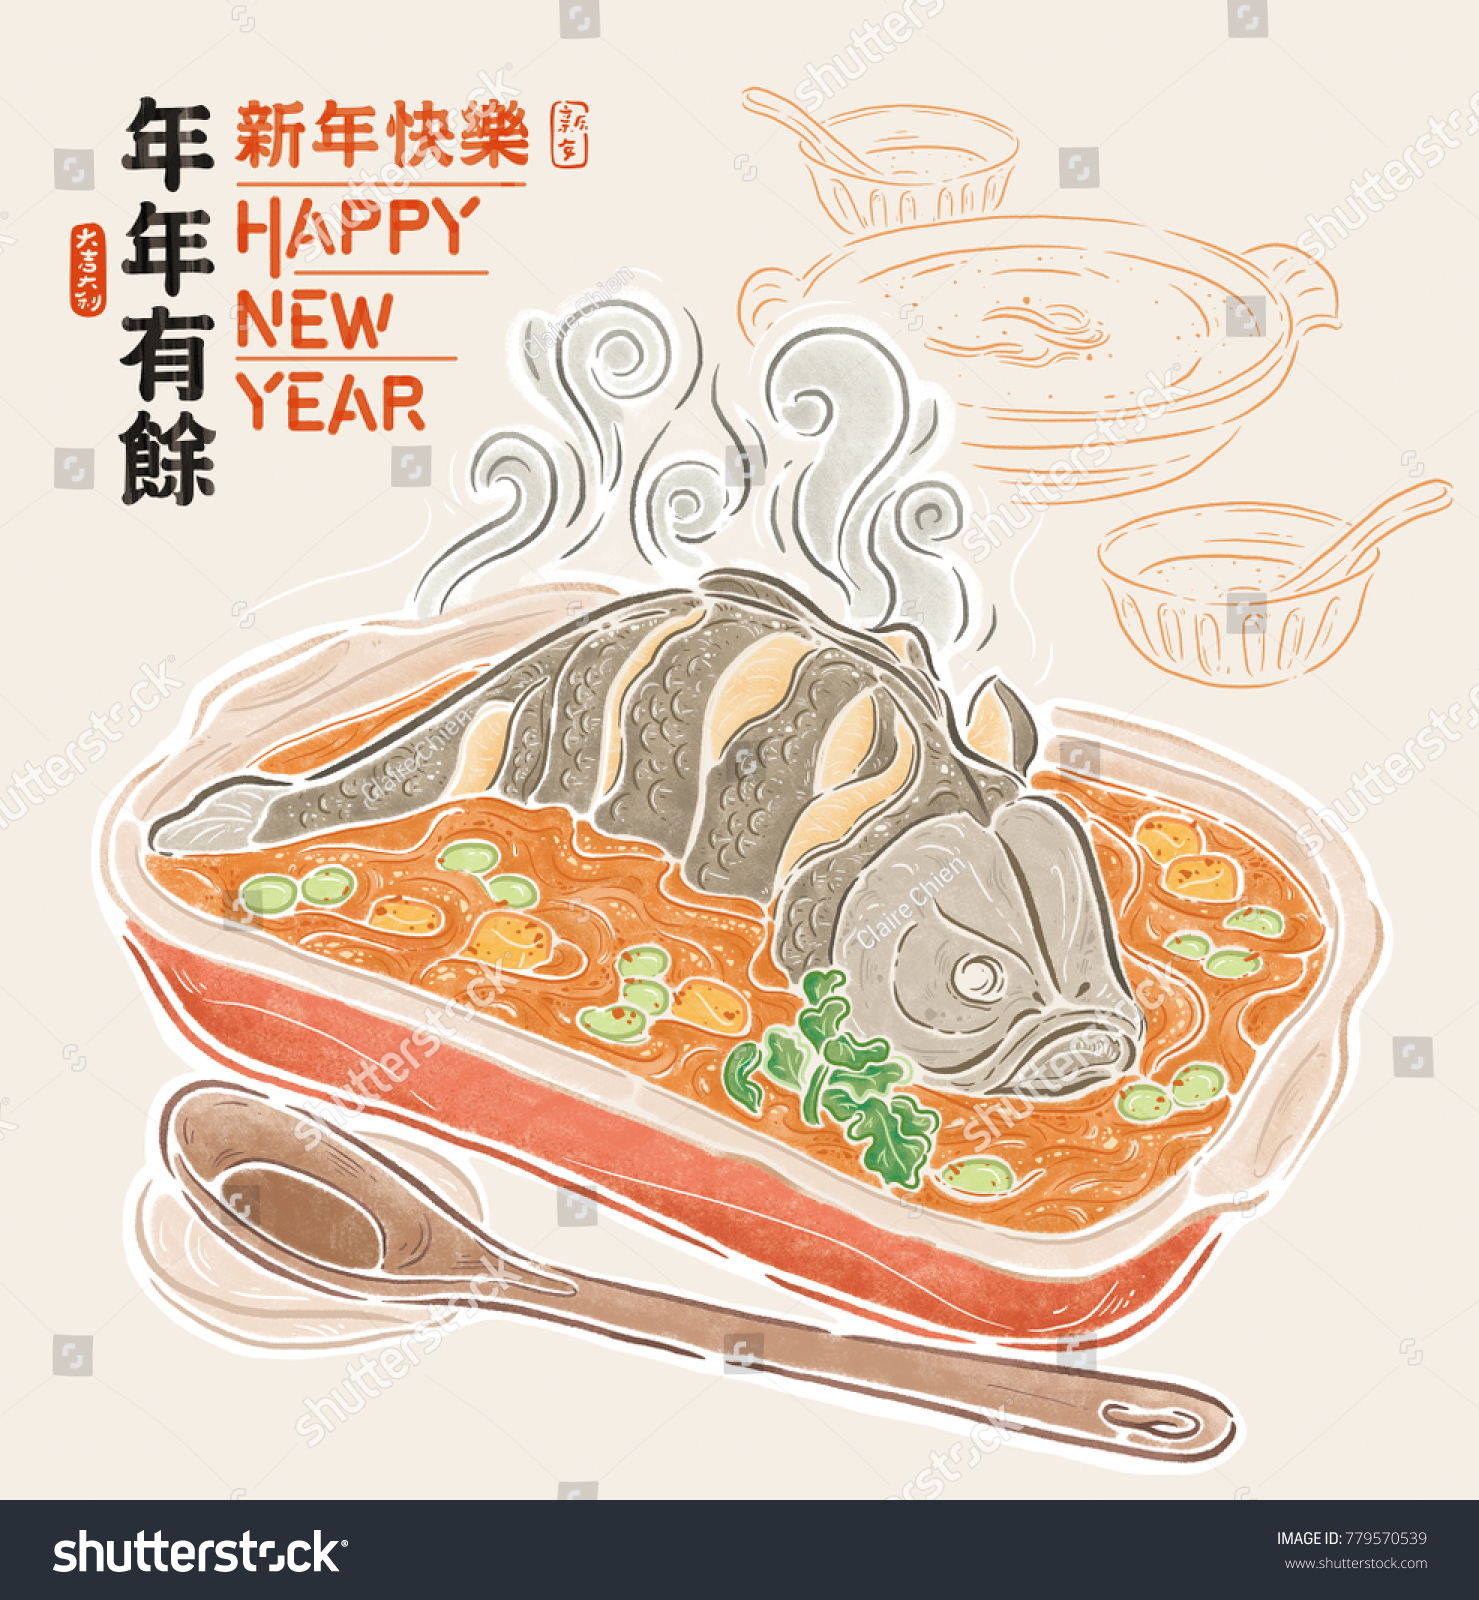 Chinese New Year Traditional Dinner Dishes Explained Every More Than And Happy